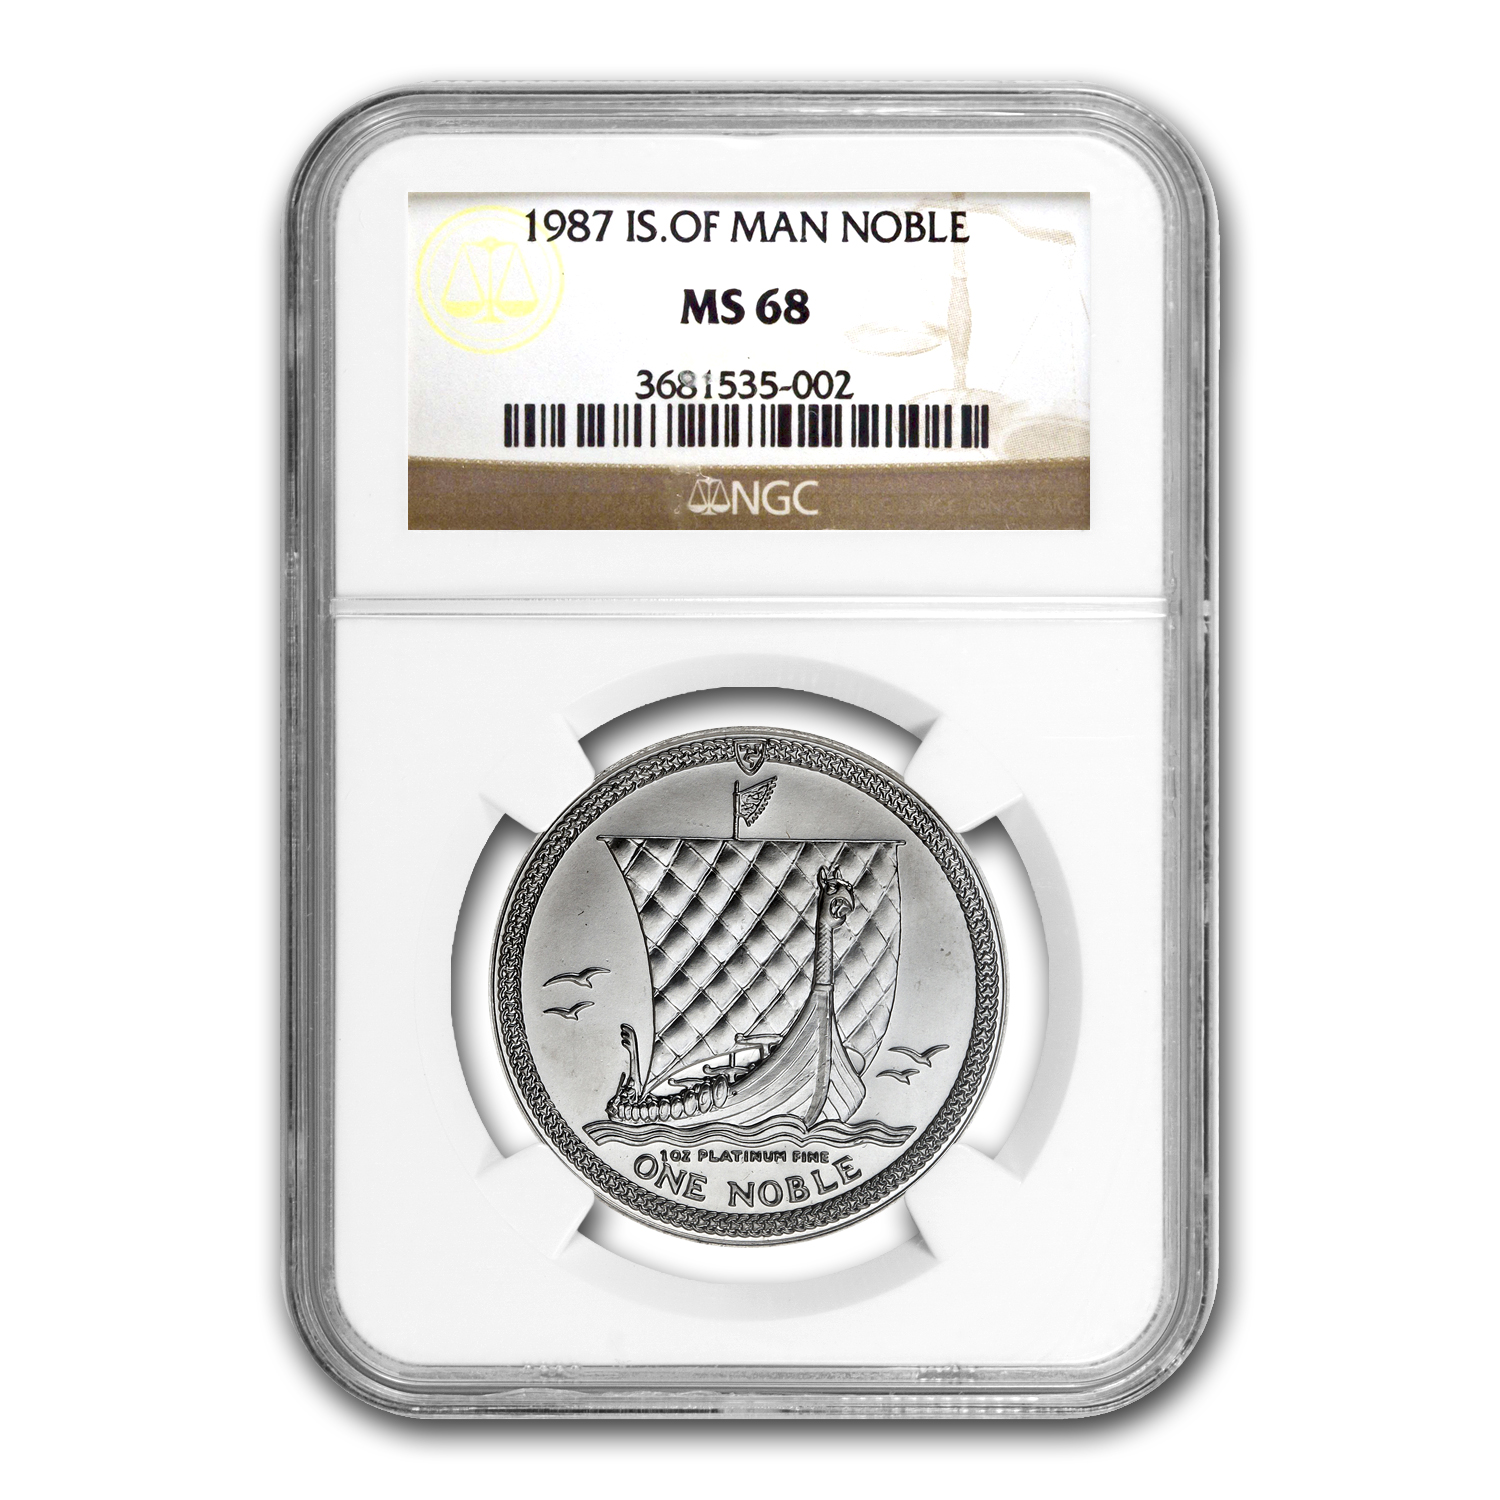 1987 1 oz Isle of Man Platinum Noble MS-68 NGC